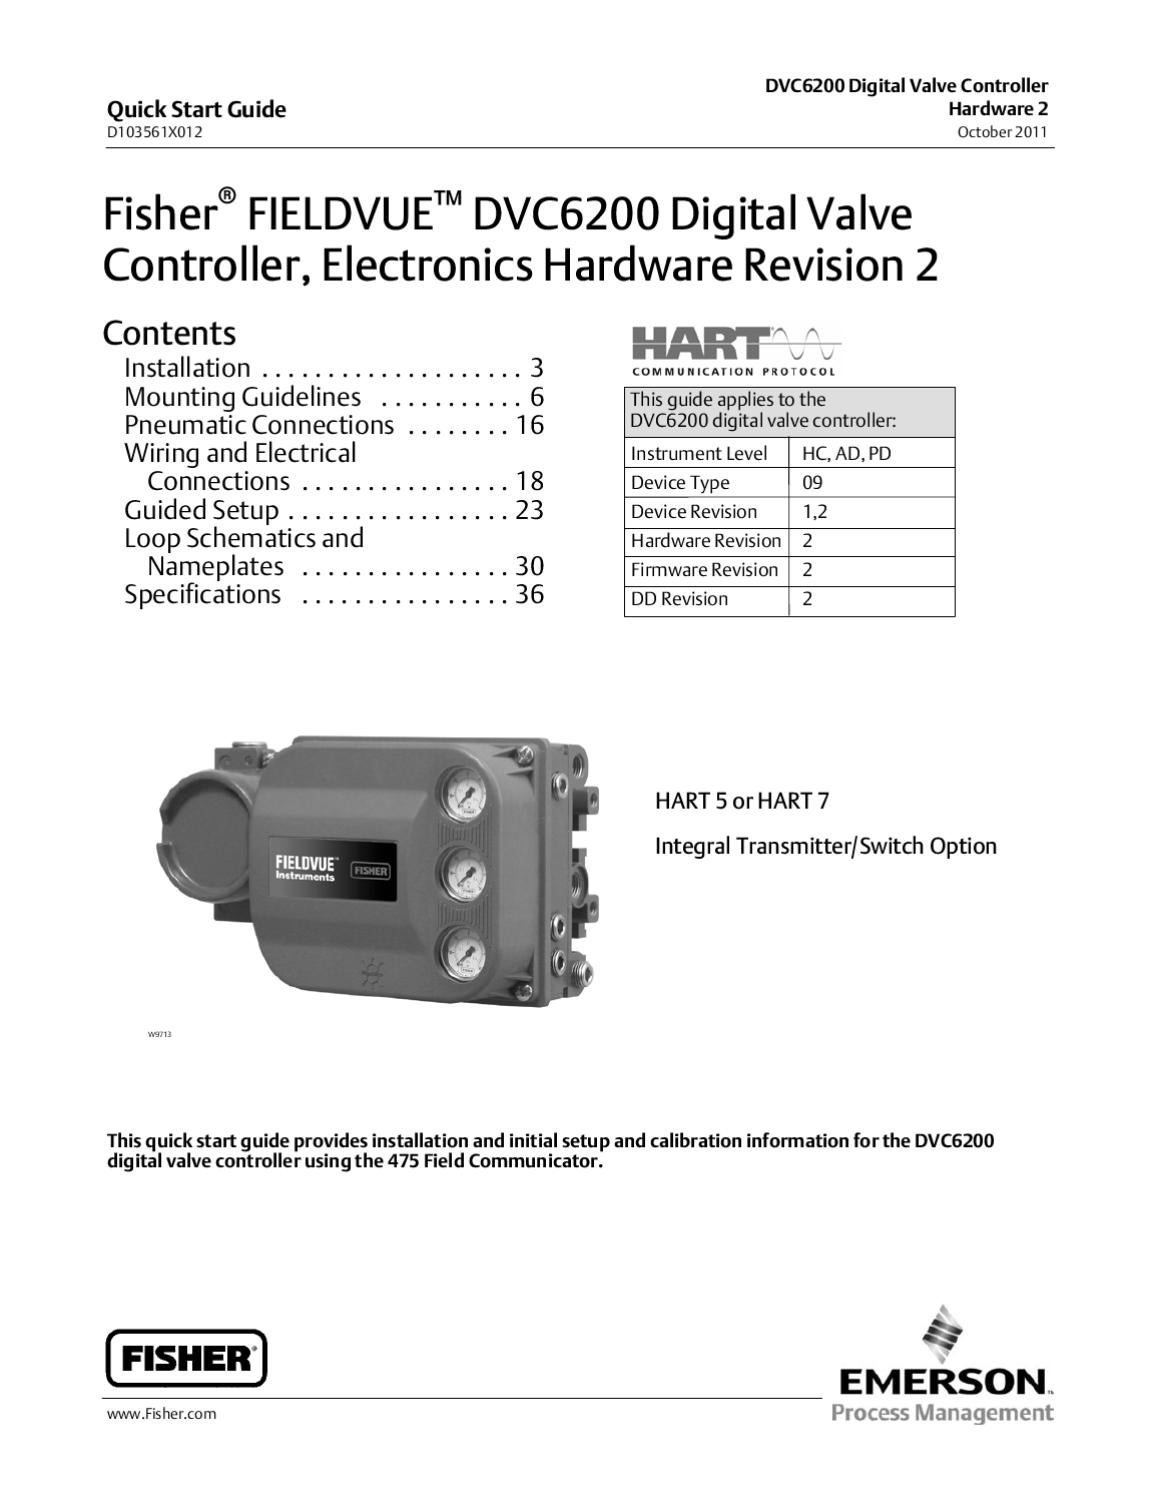 page_1 dvc6200 quick start guide elctrncs hrdwre rev 2 oct 2011 by rmc fisher dvc 2000 wiring diagram at mr168.co